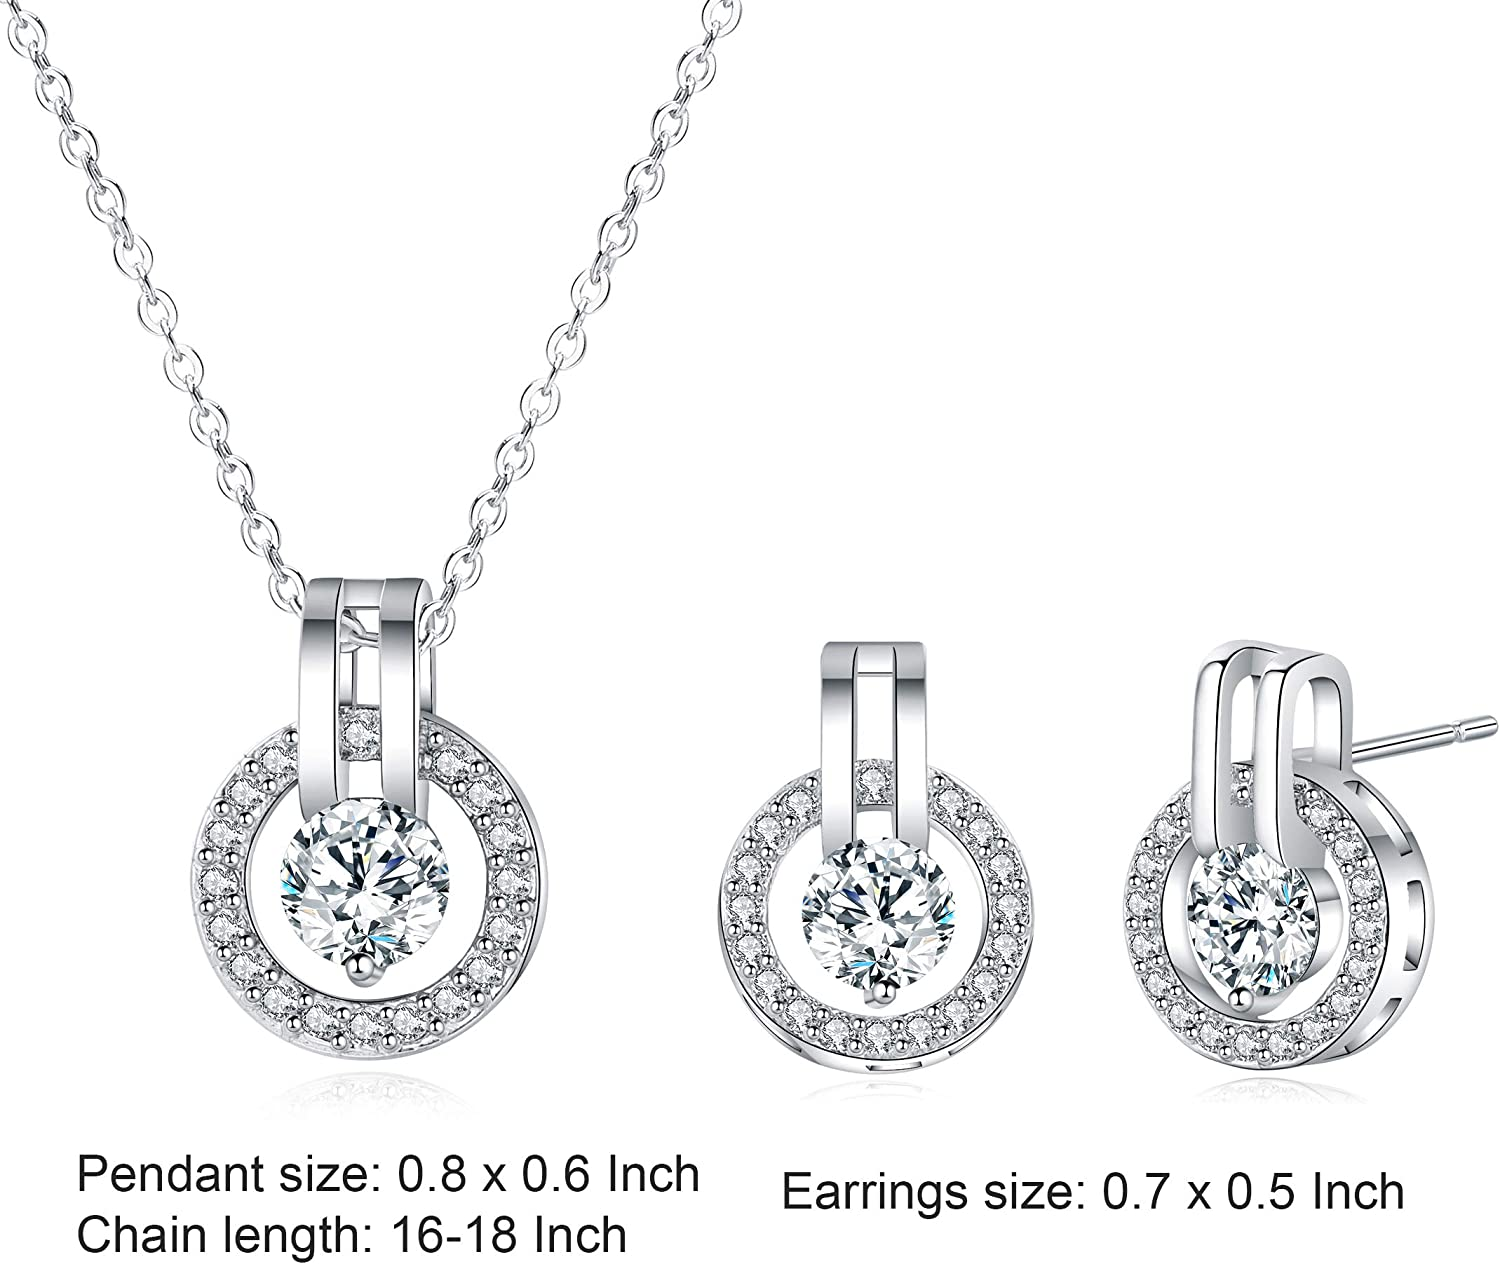 Fashion Prime Gift 18K White Gold Plated Round Necklace Pendant and Stud Earrings for Women Mom Teen Girl Jewelry Set